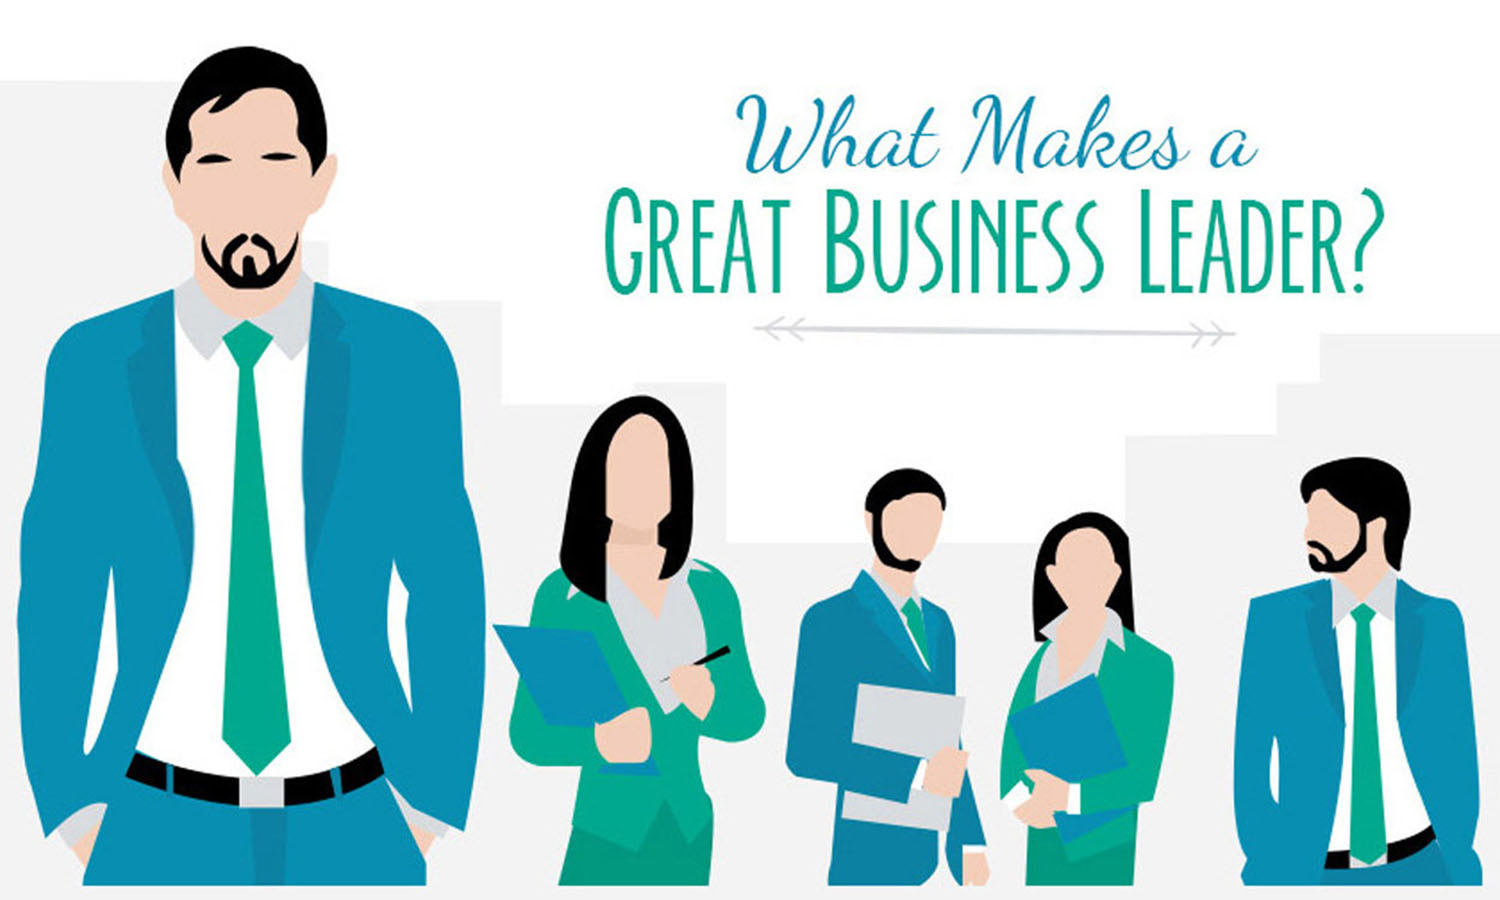 5 Essential Qualities of a Great Business Leader